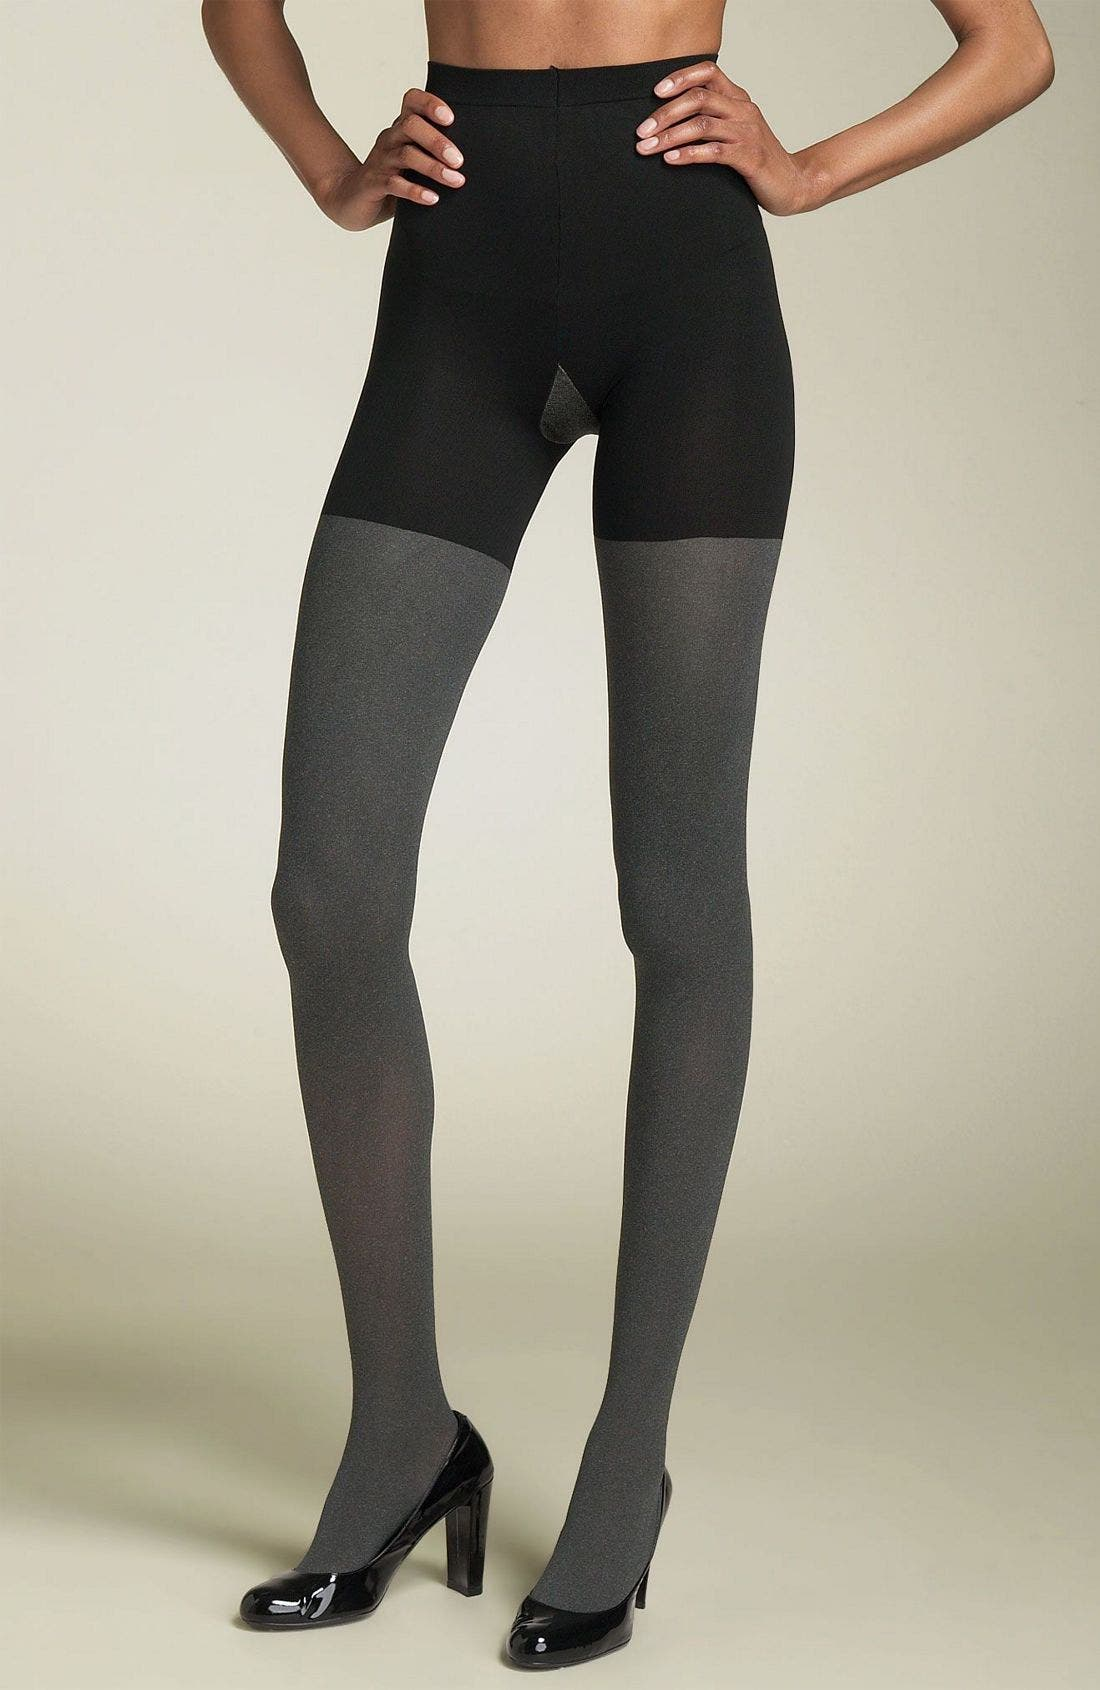 'Tight End' Shaping Tights,                         Main,                         color, 098